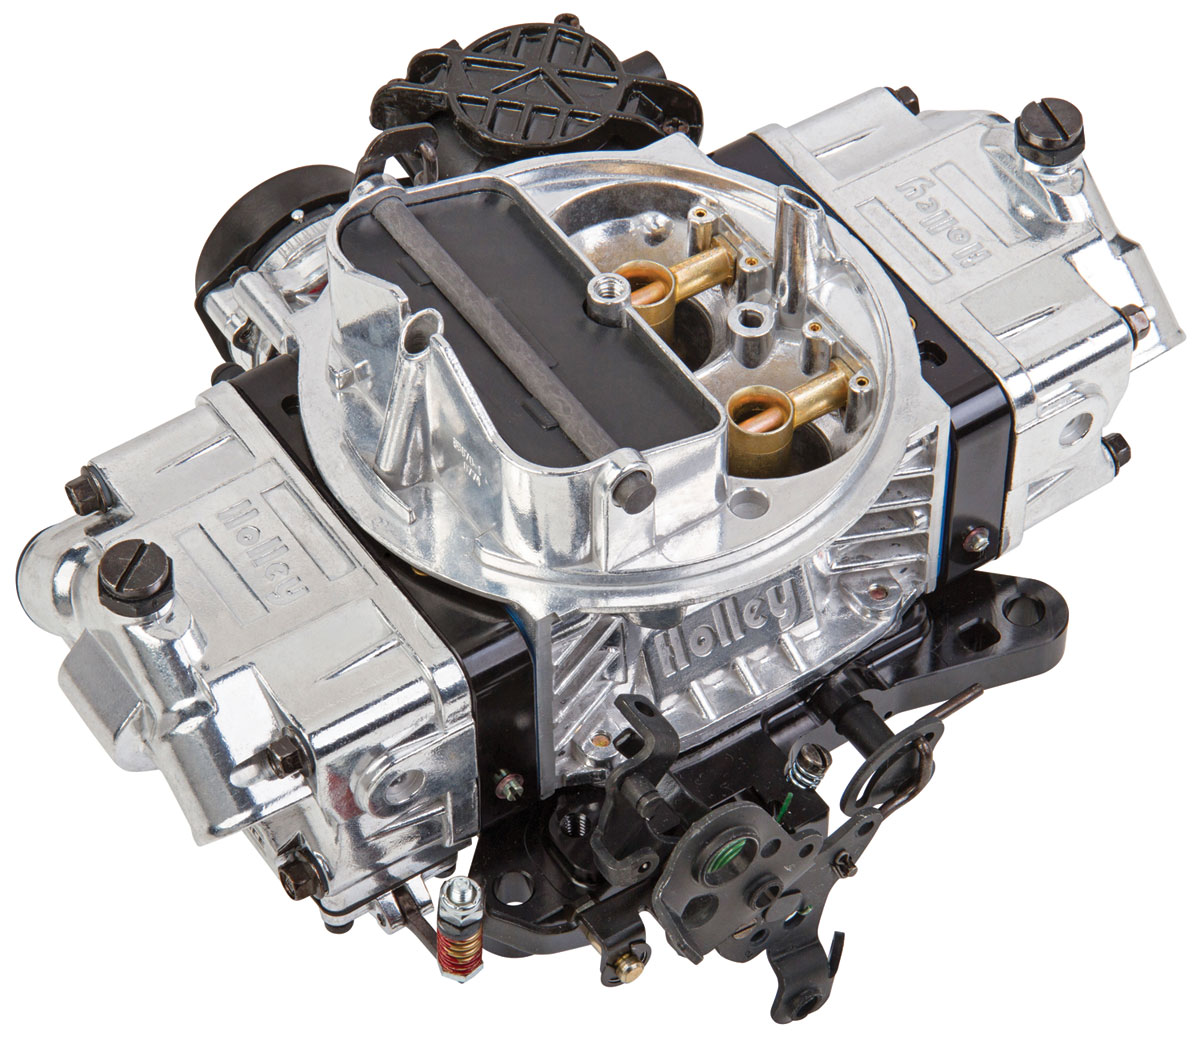 Carburetor, Holley, 870 CFM Ultra Street Avenger, Black Metering Blocks